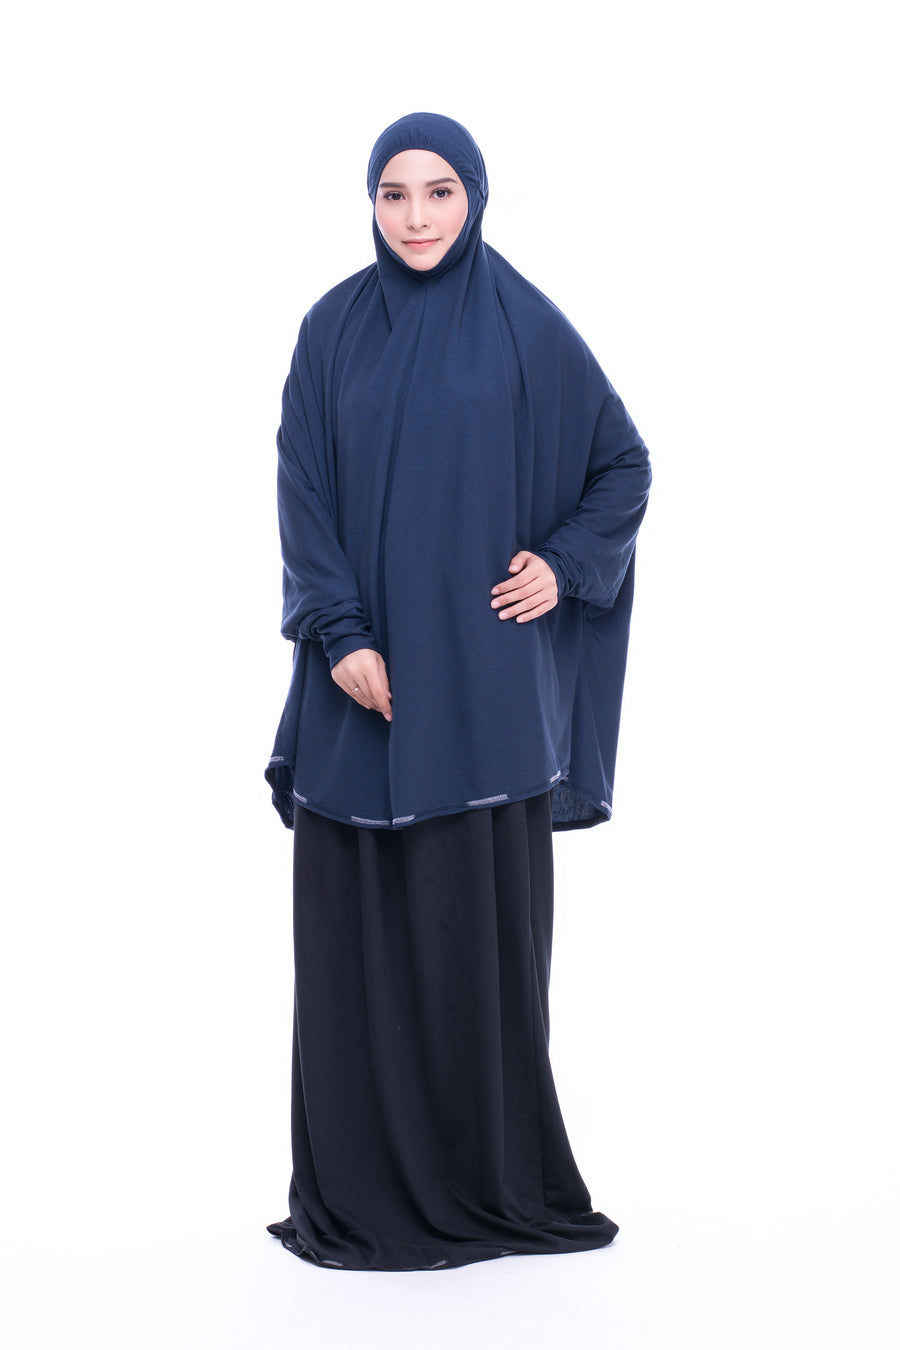 Telekung Mini Denim - Navy Blue (with sleeve)